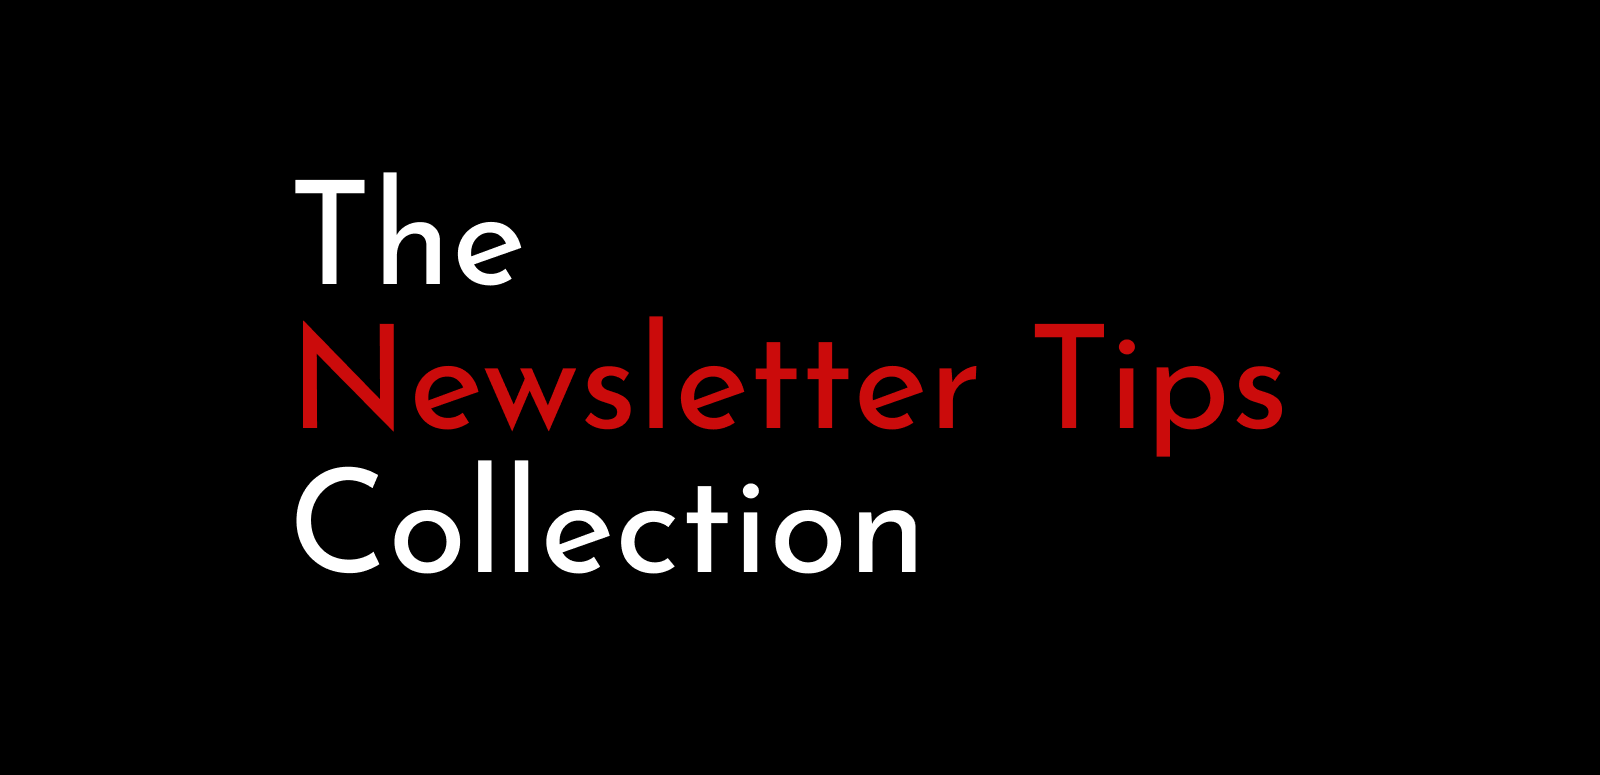 The Newsletter Tips Collection